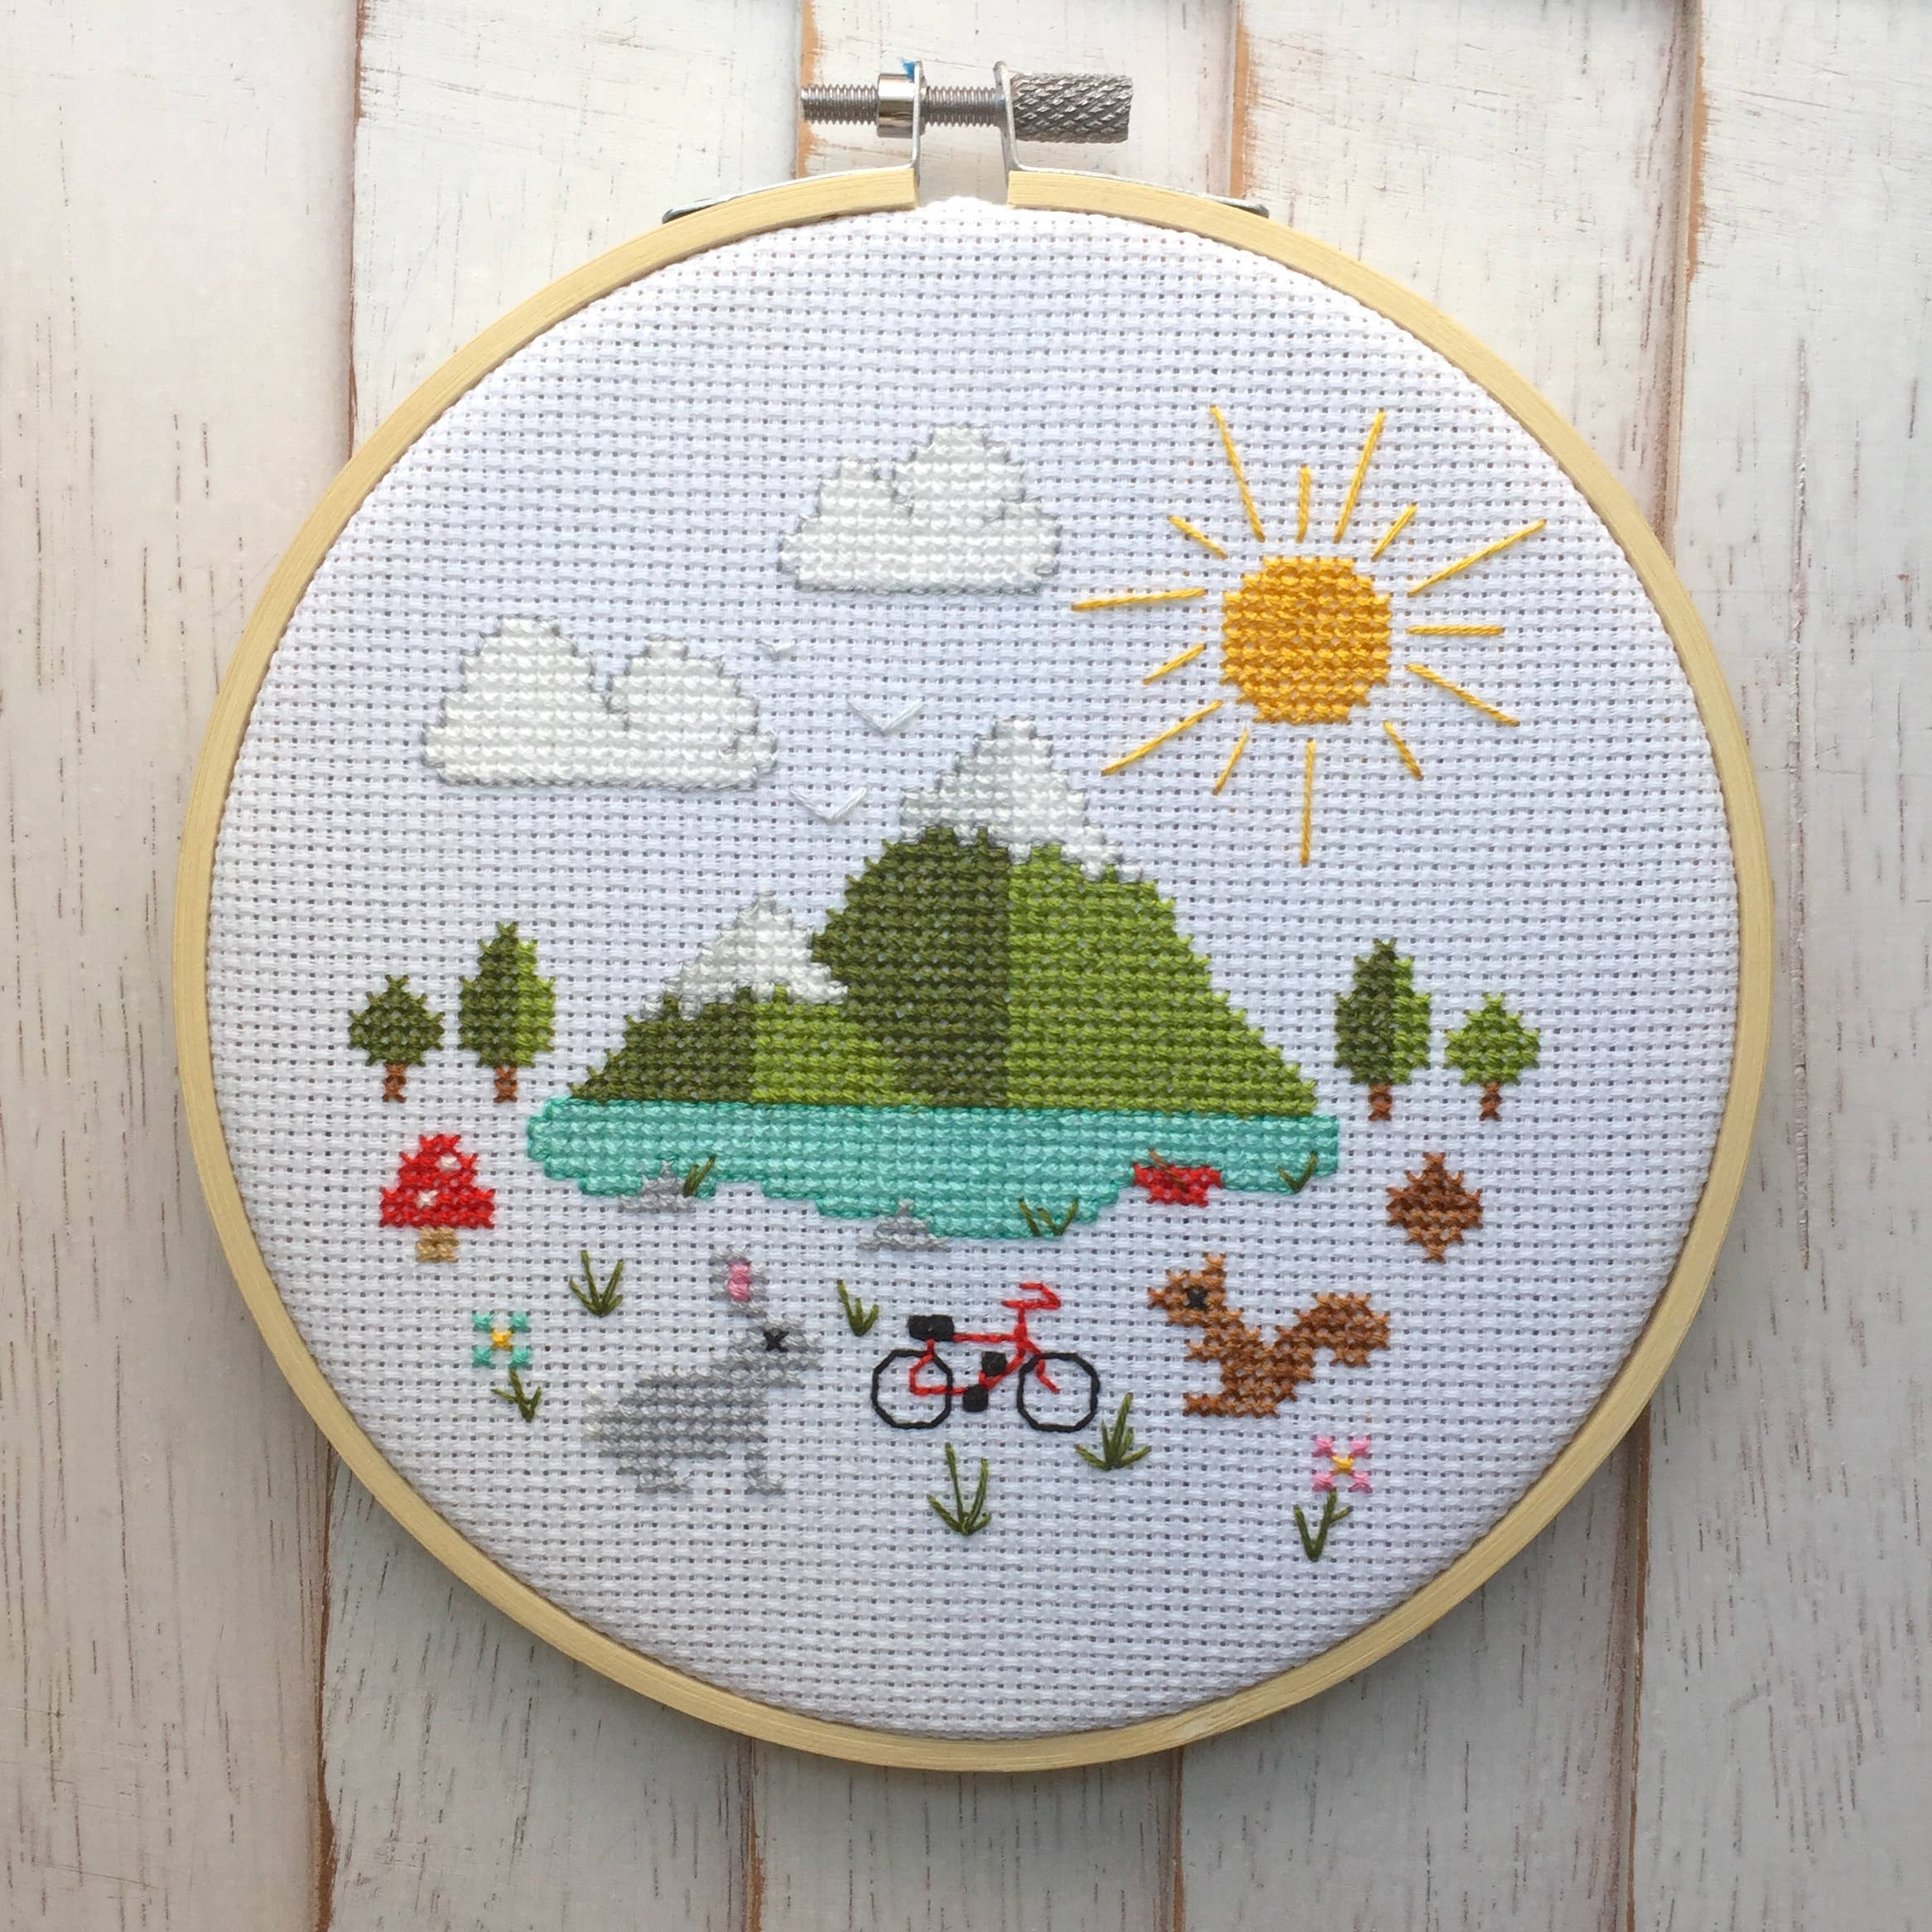 Great Outdoors Counted Cross Stitch DIY KIT   Trada Marketplace